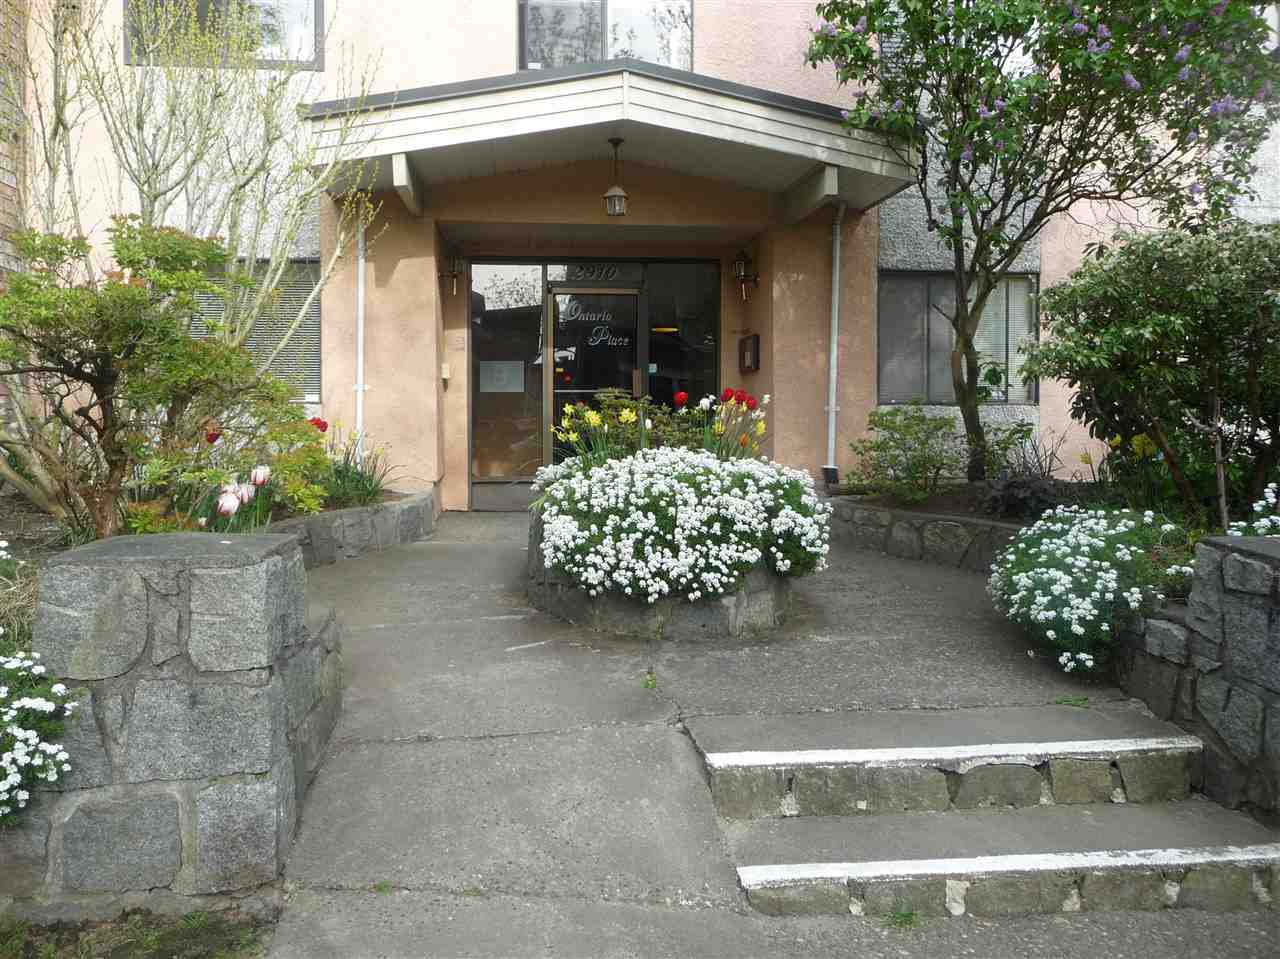 Main Photo: 103 2910 ONTARIO STREET in Vancouver: Mount Pleasant VE Condo for sale (Vancouver East)  : MLS® # R2058838